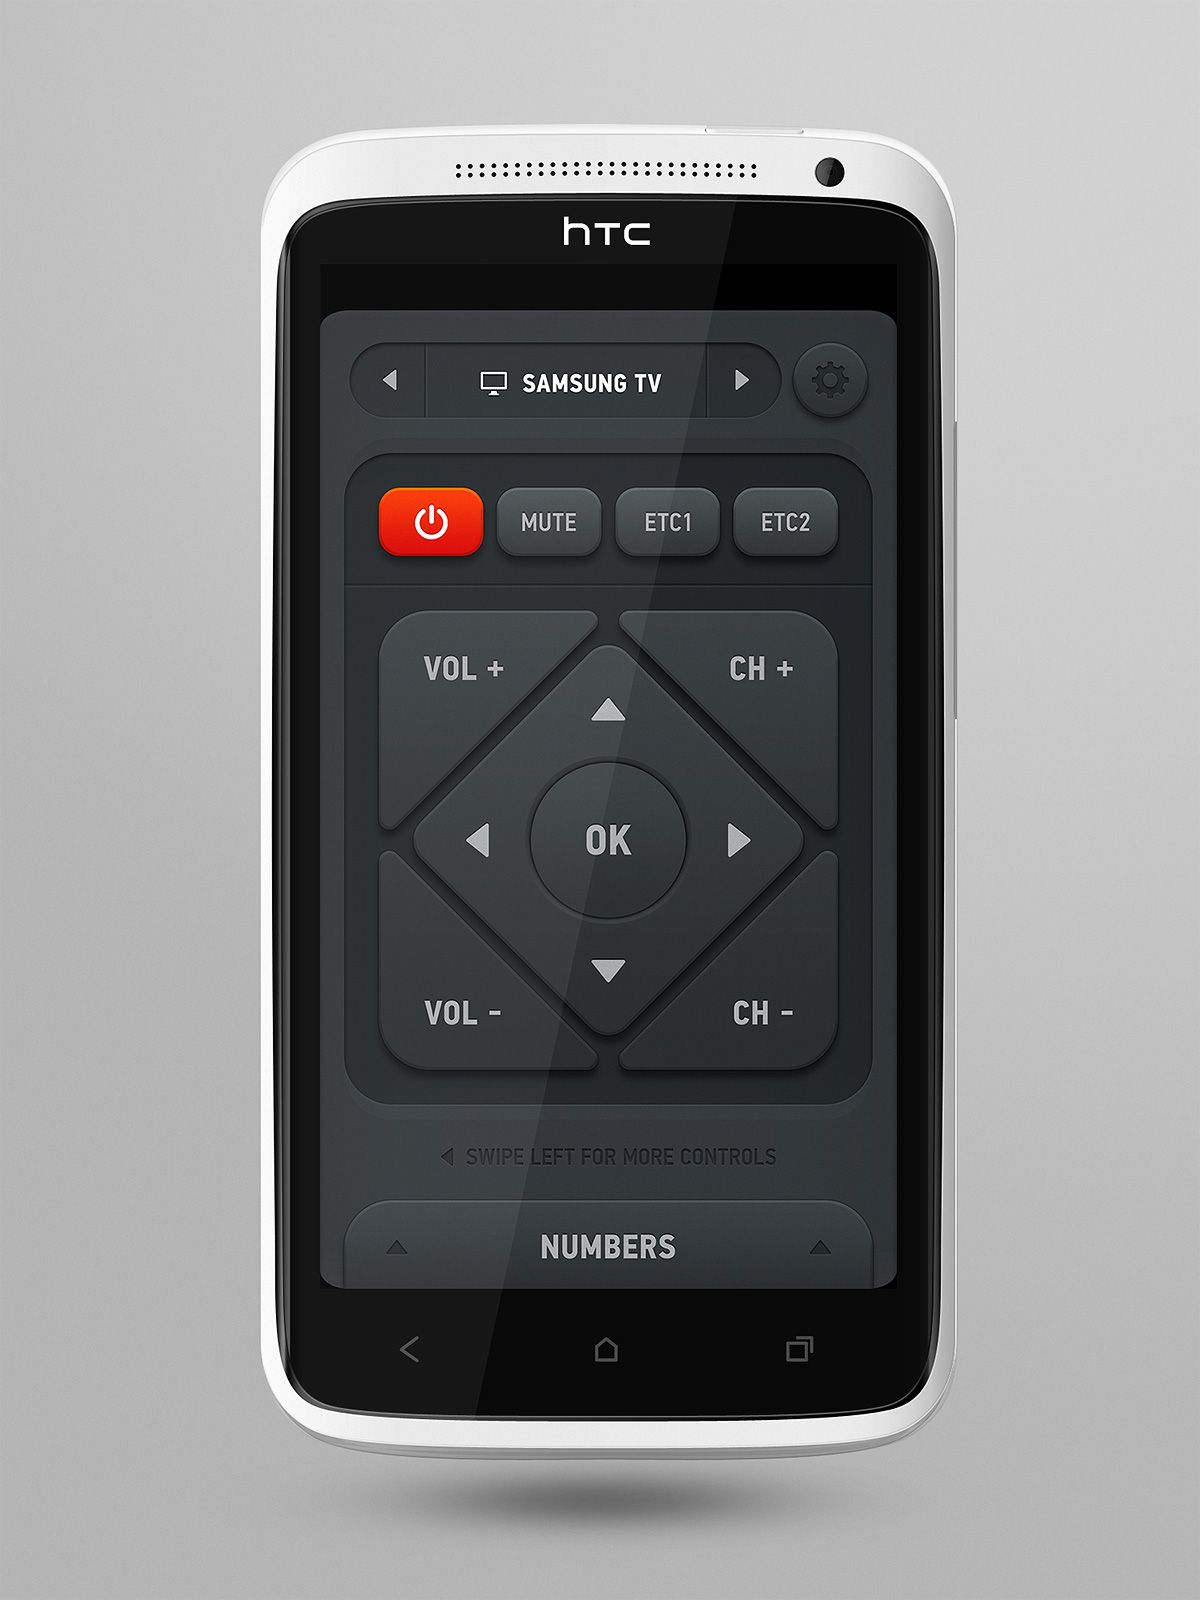 Smart Remote app interface design #htc #interface #design #remote